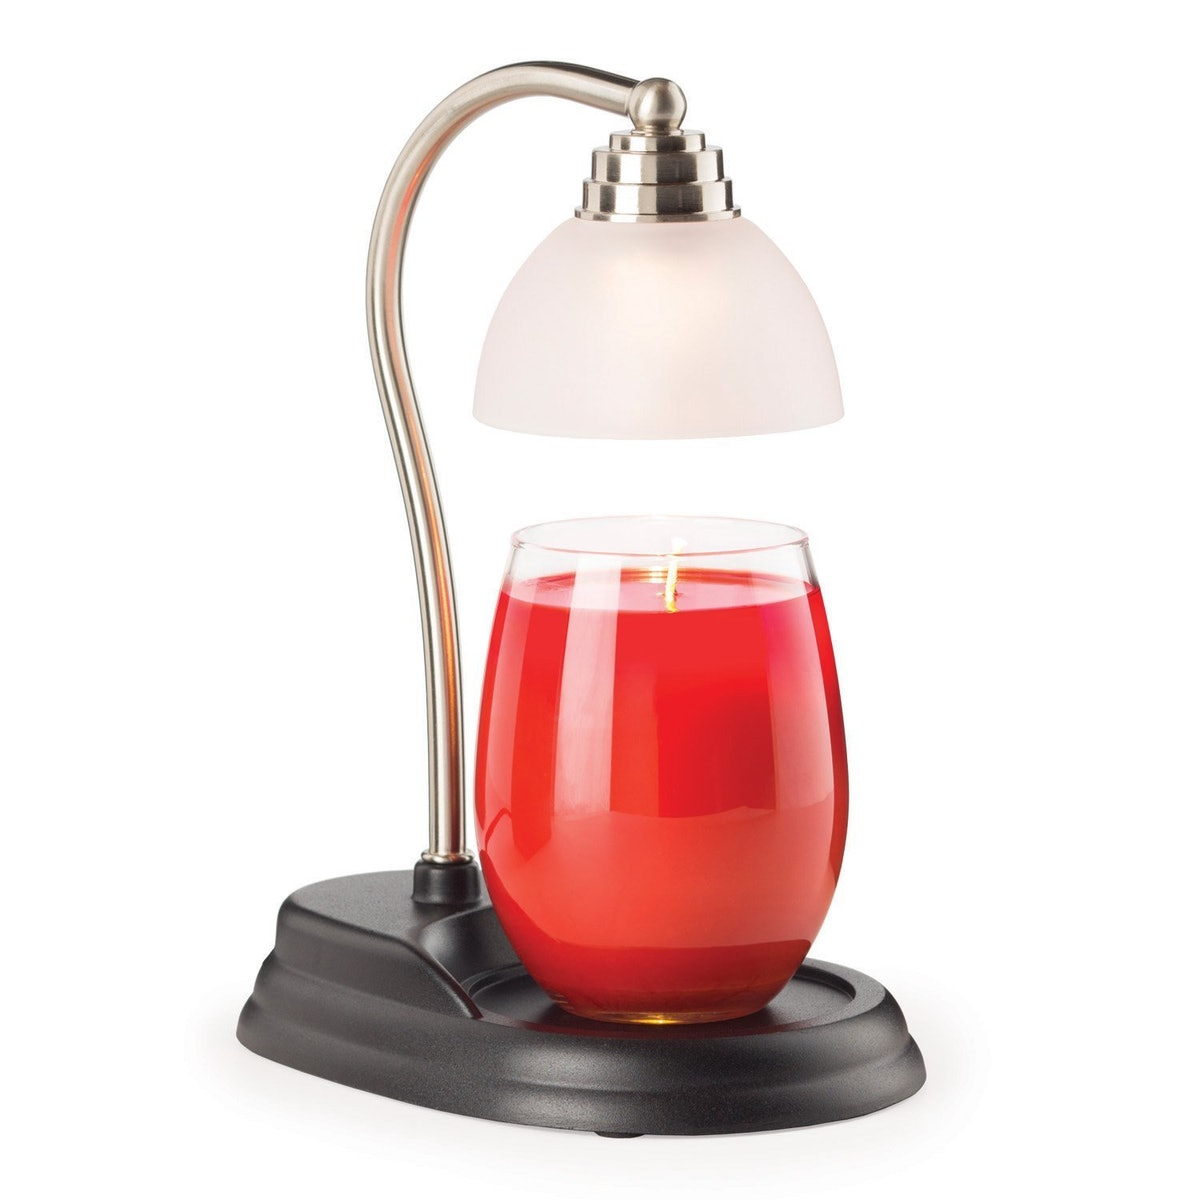 Candle Warmers Etc. Candle Warmer Lamp